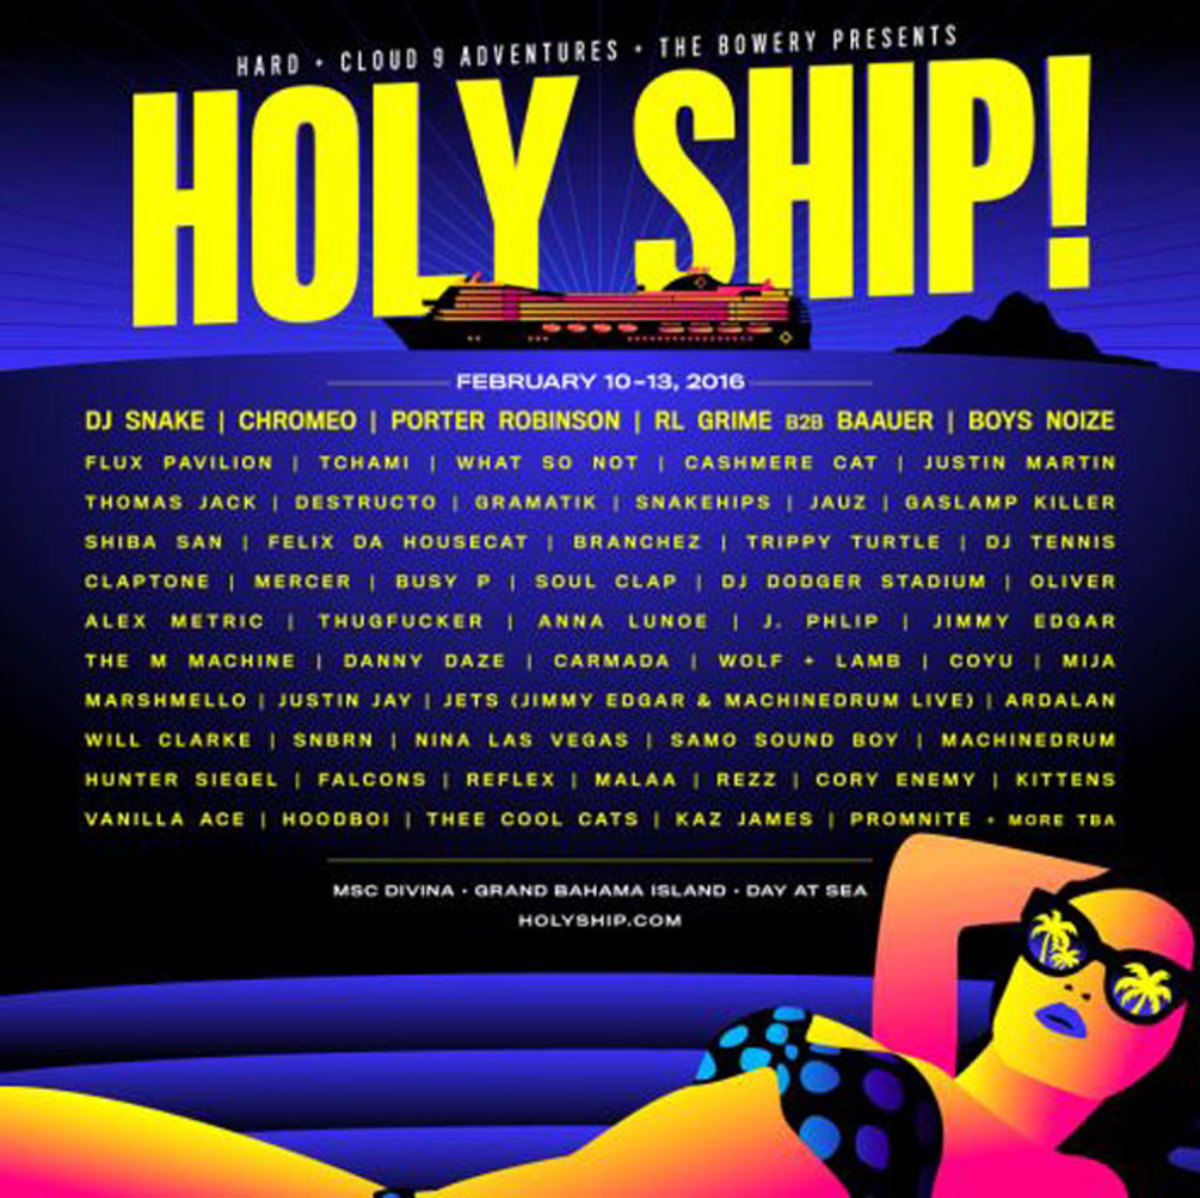 Holy Ship! Announces 2016 Line-Up